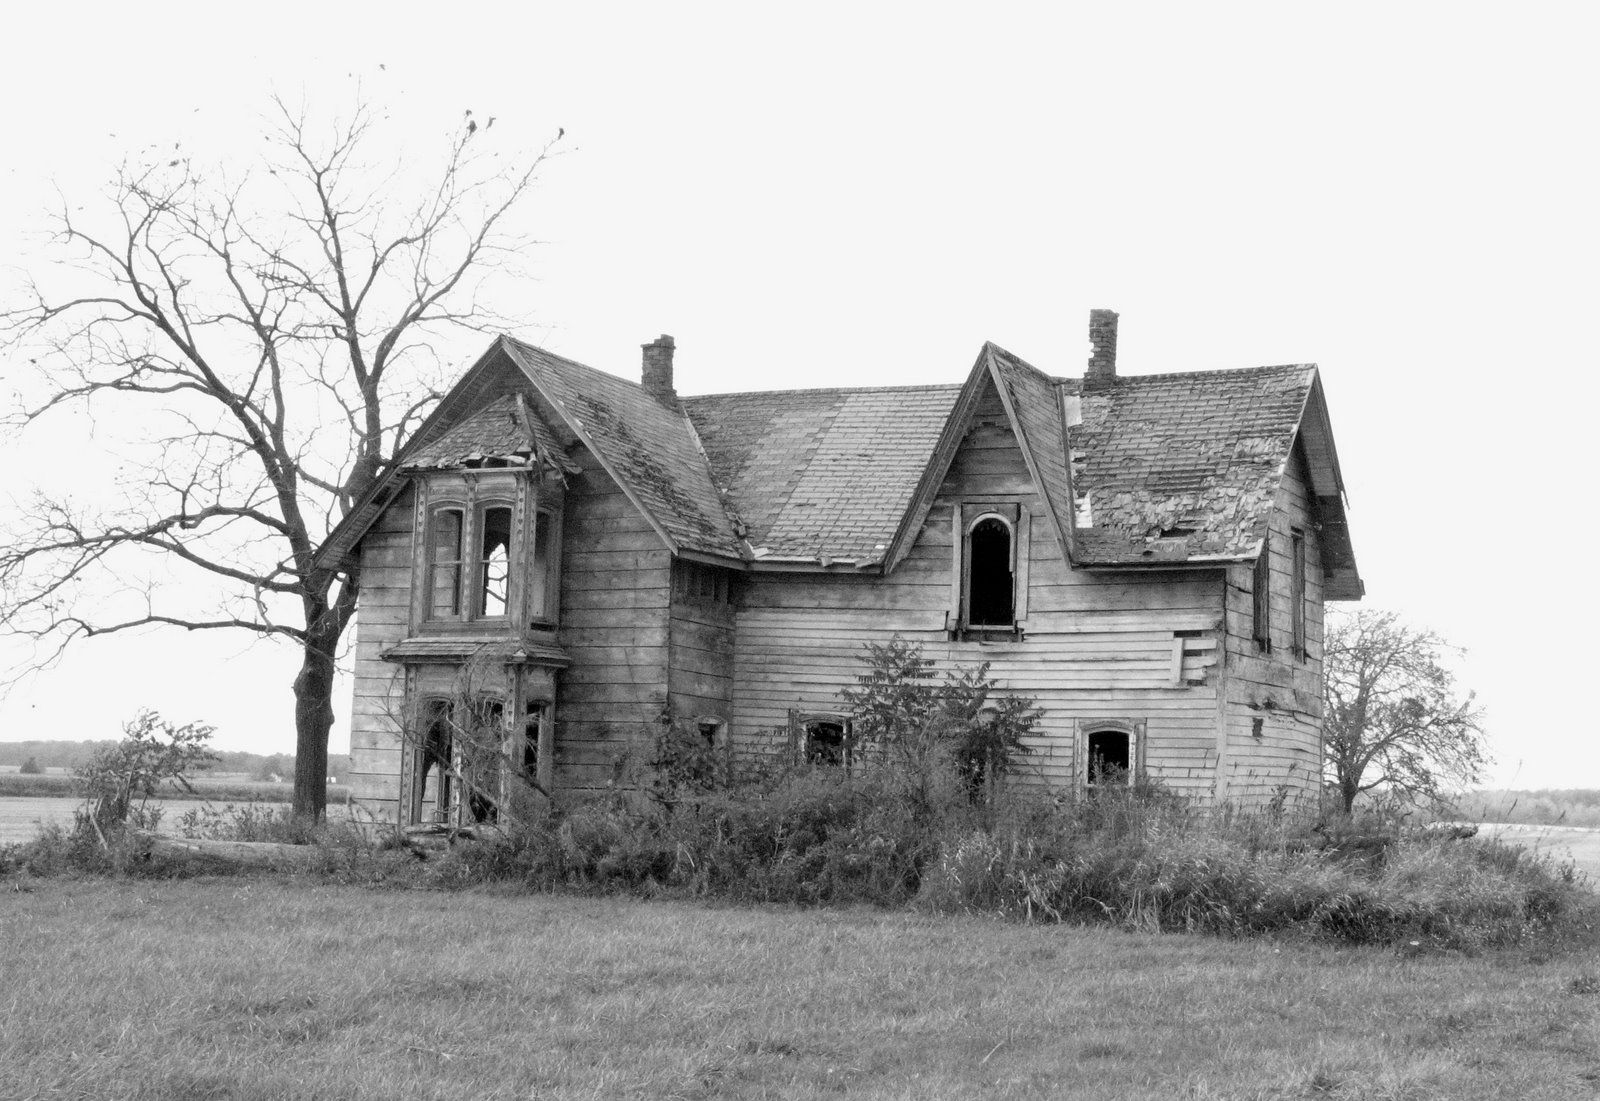 Creepy Old Abandoned Farm Houses - Year of Clean Water